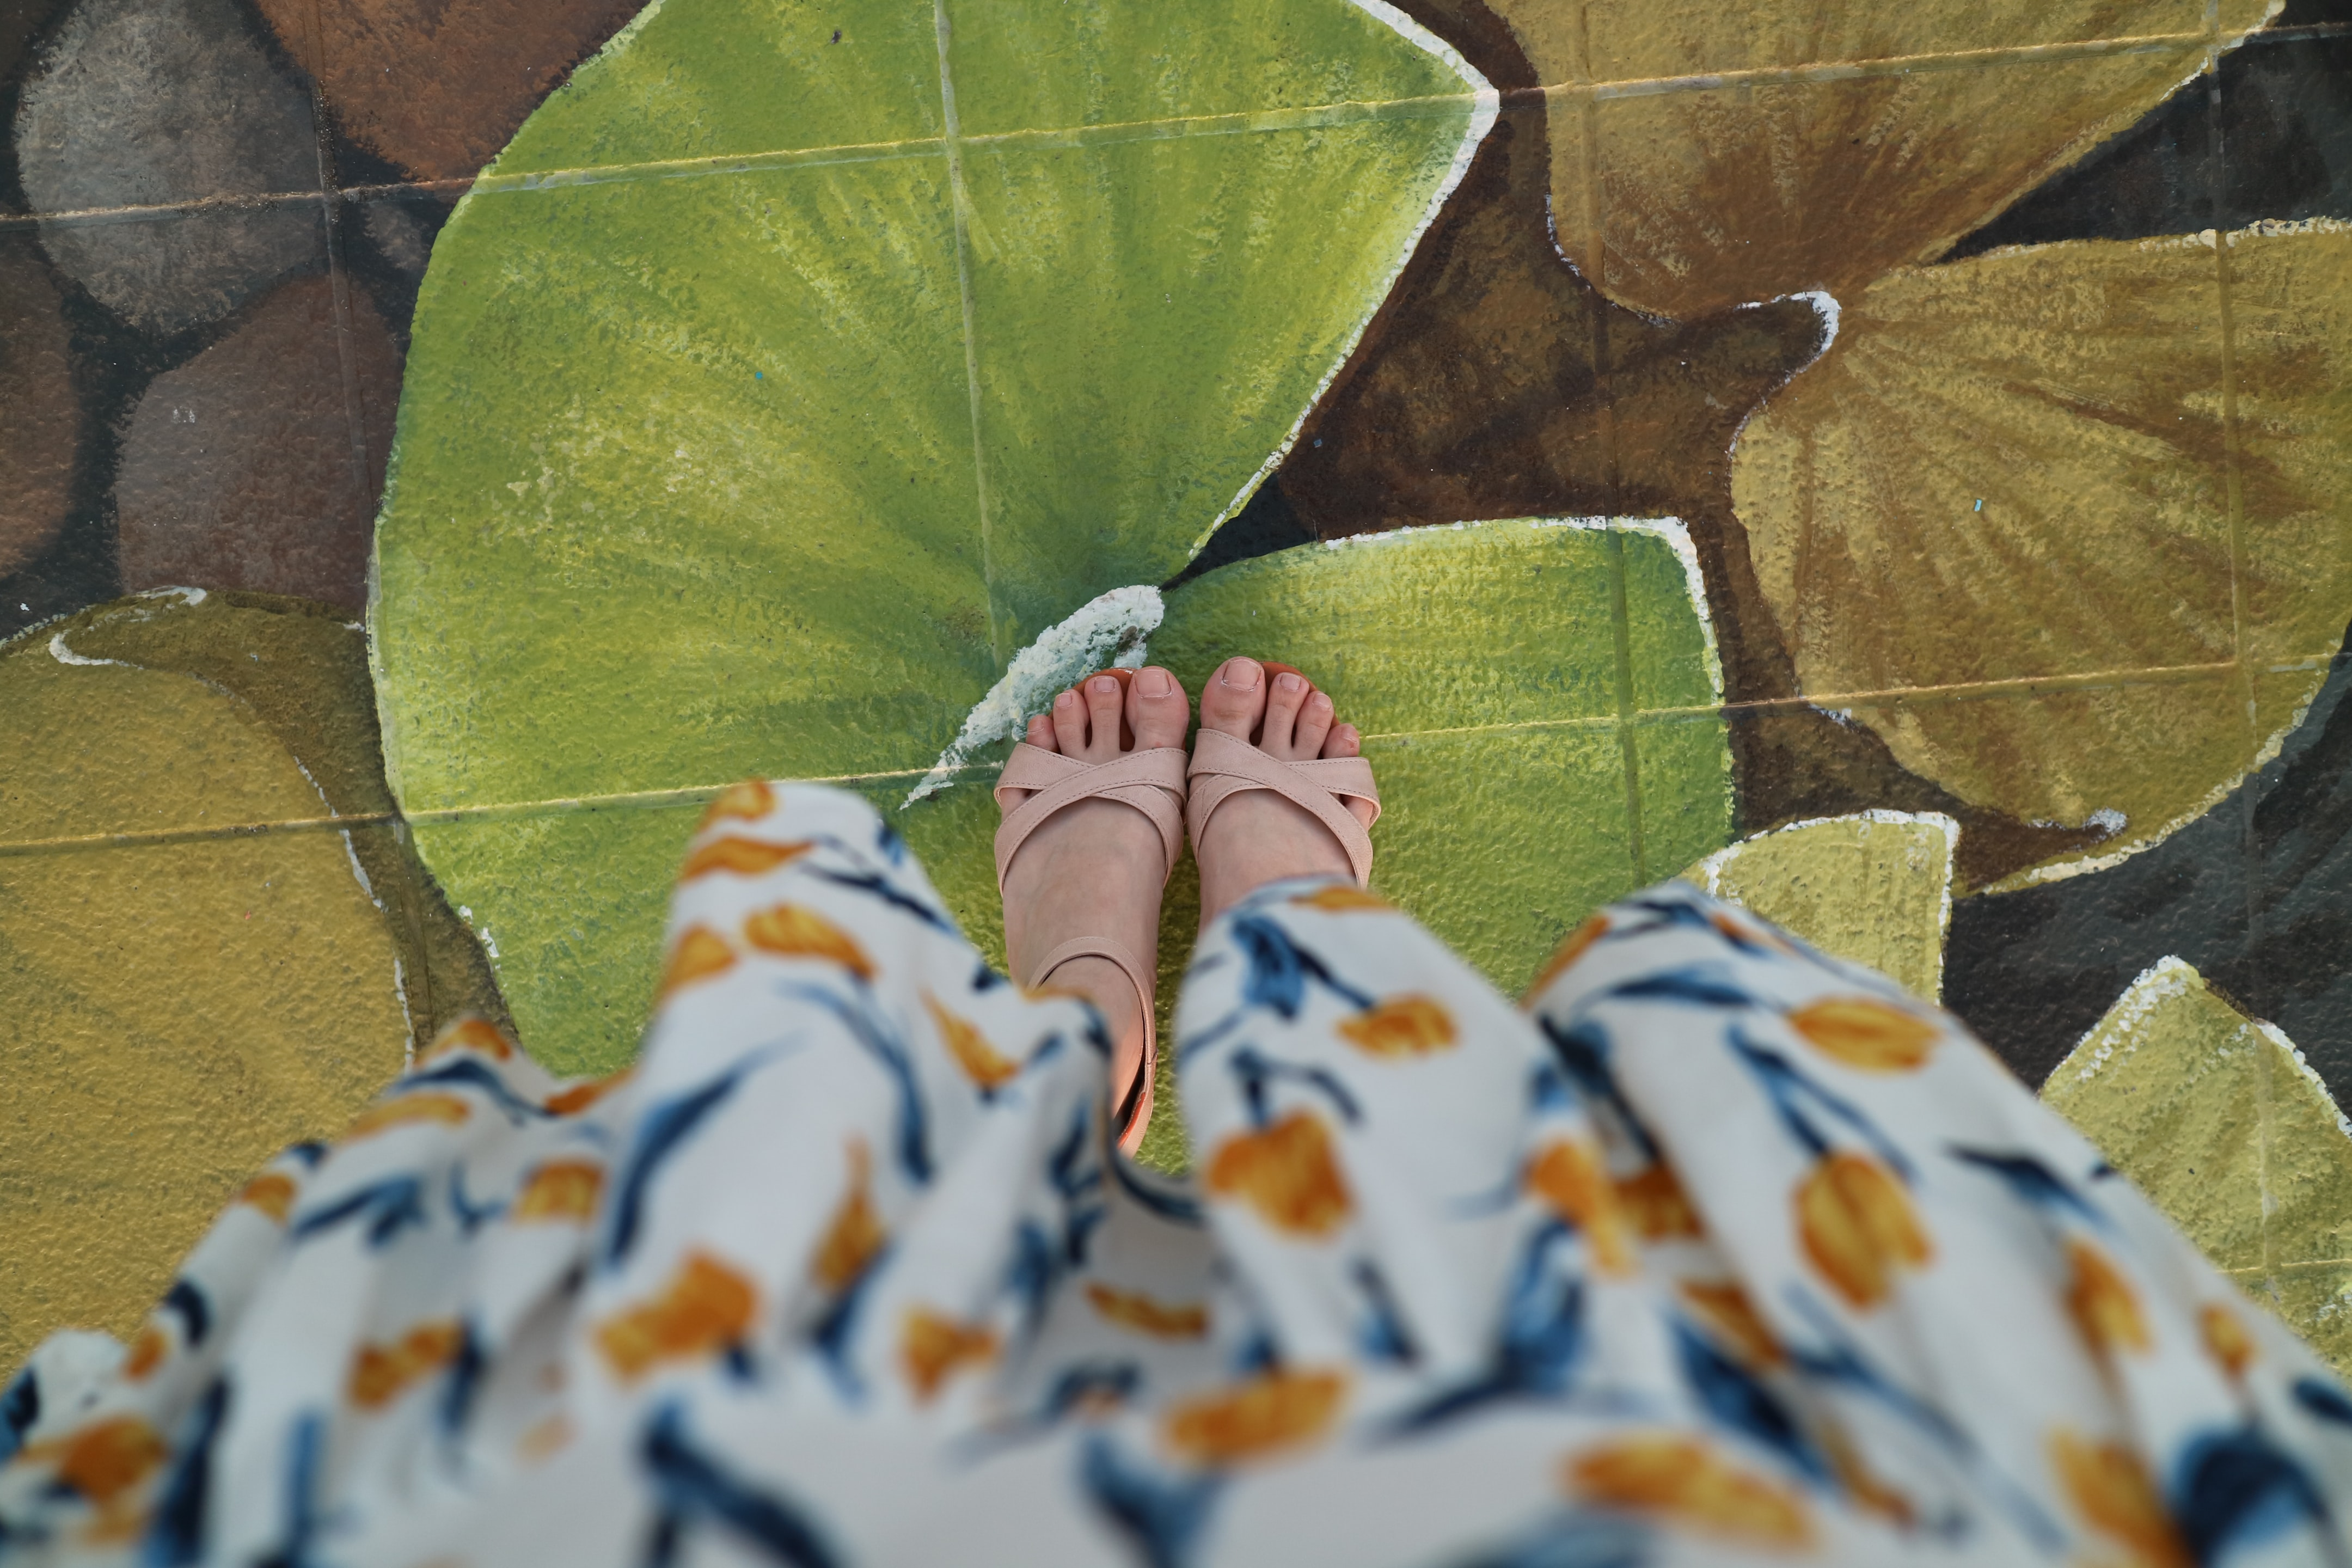 Woman in floral dress and sandals' feet standing on green water lily street art, Busan